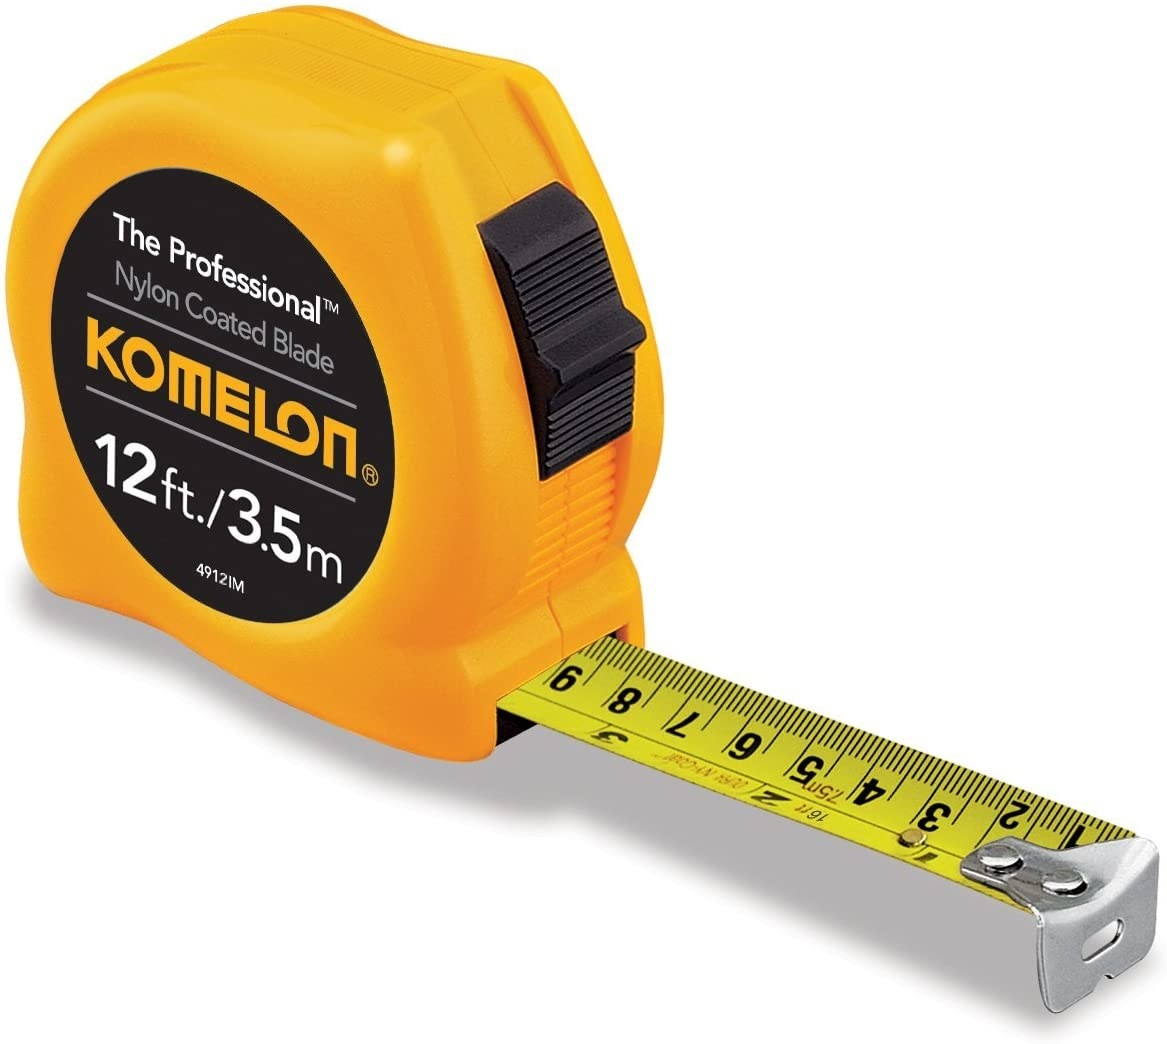 A tape measure with an extended portion showing the actual tape measurements